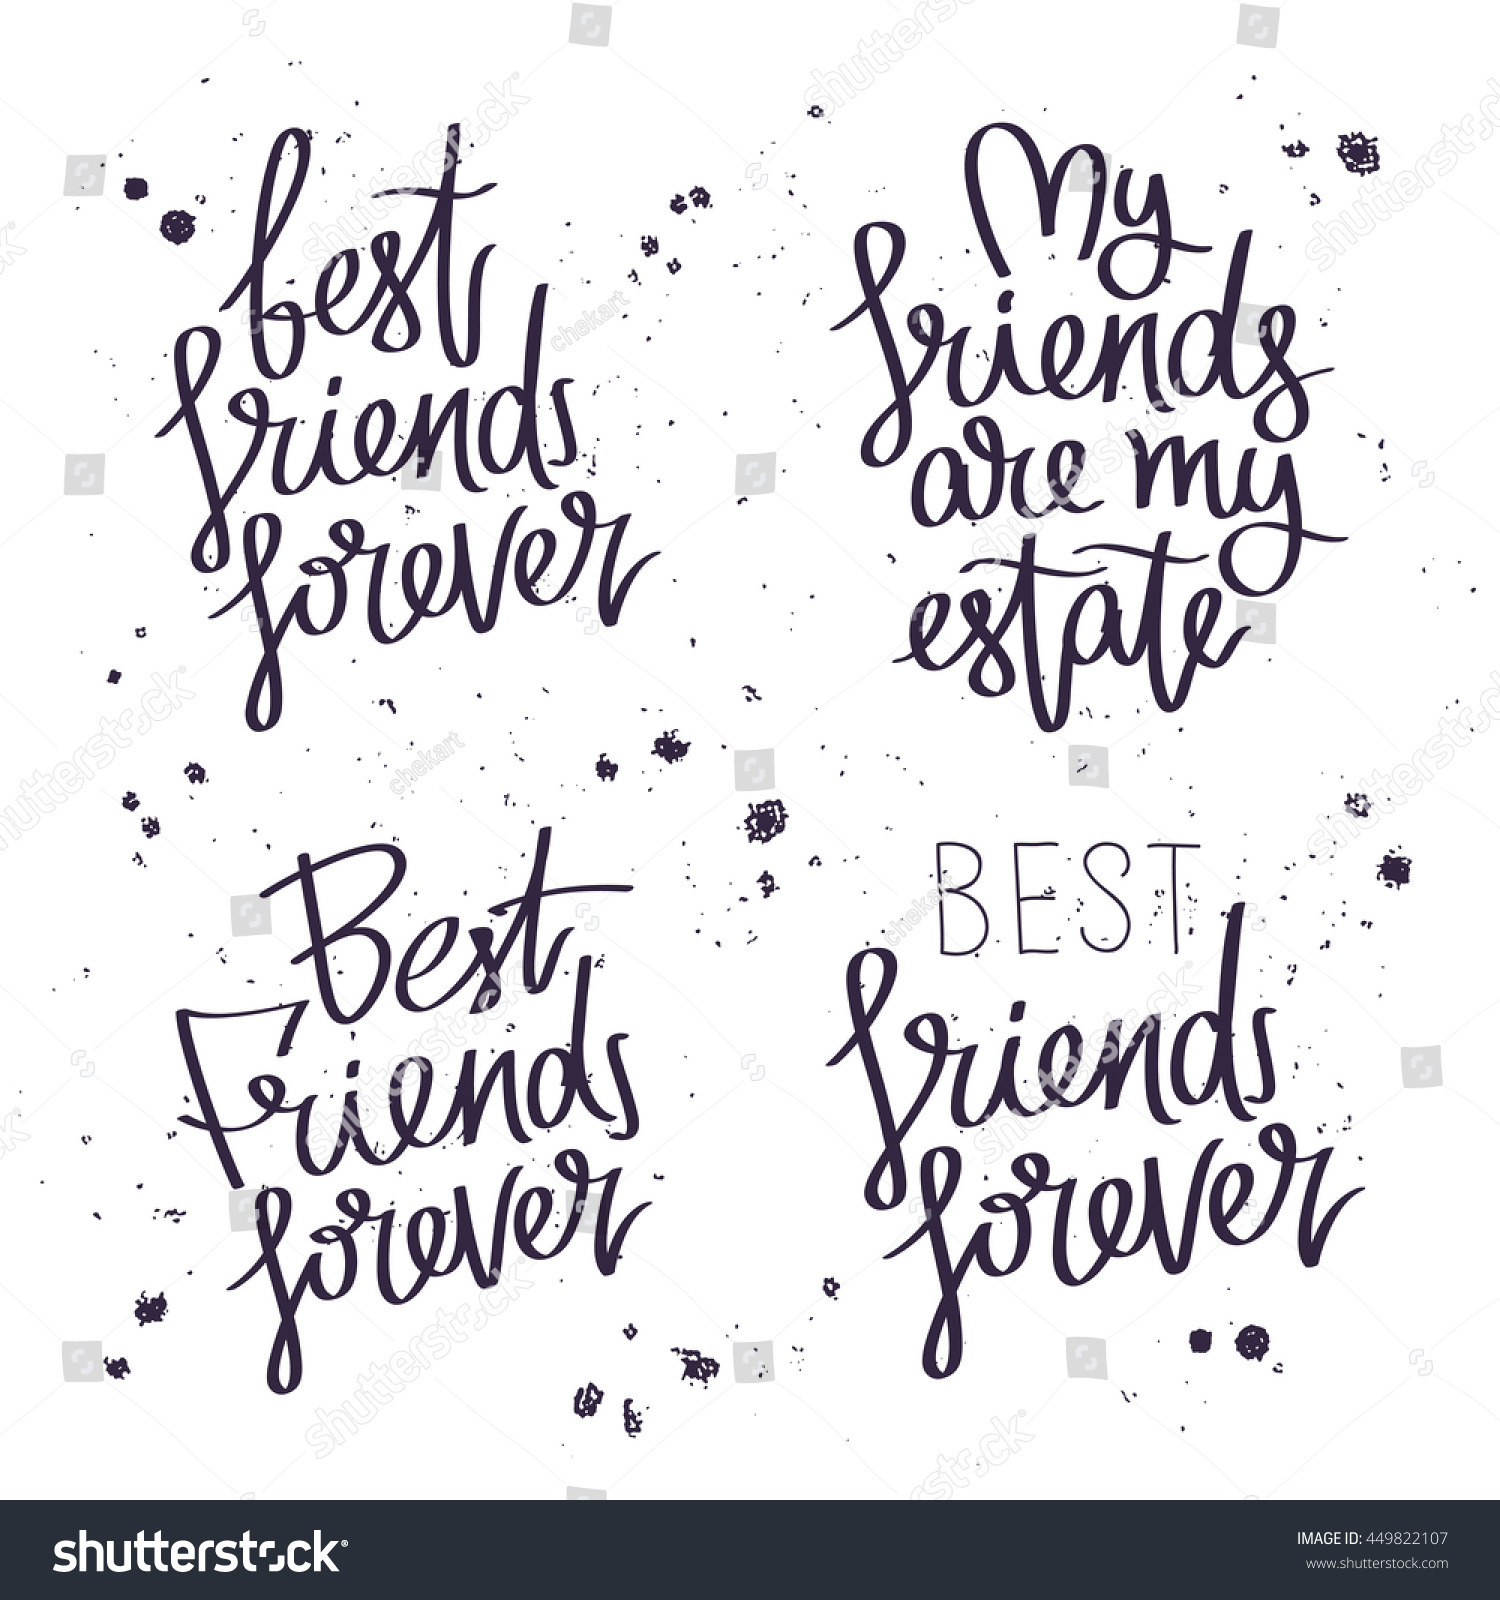 Quotes For Best Friends Best Friends Forever Trend Calligraphy Vector Stock Vector